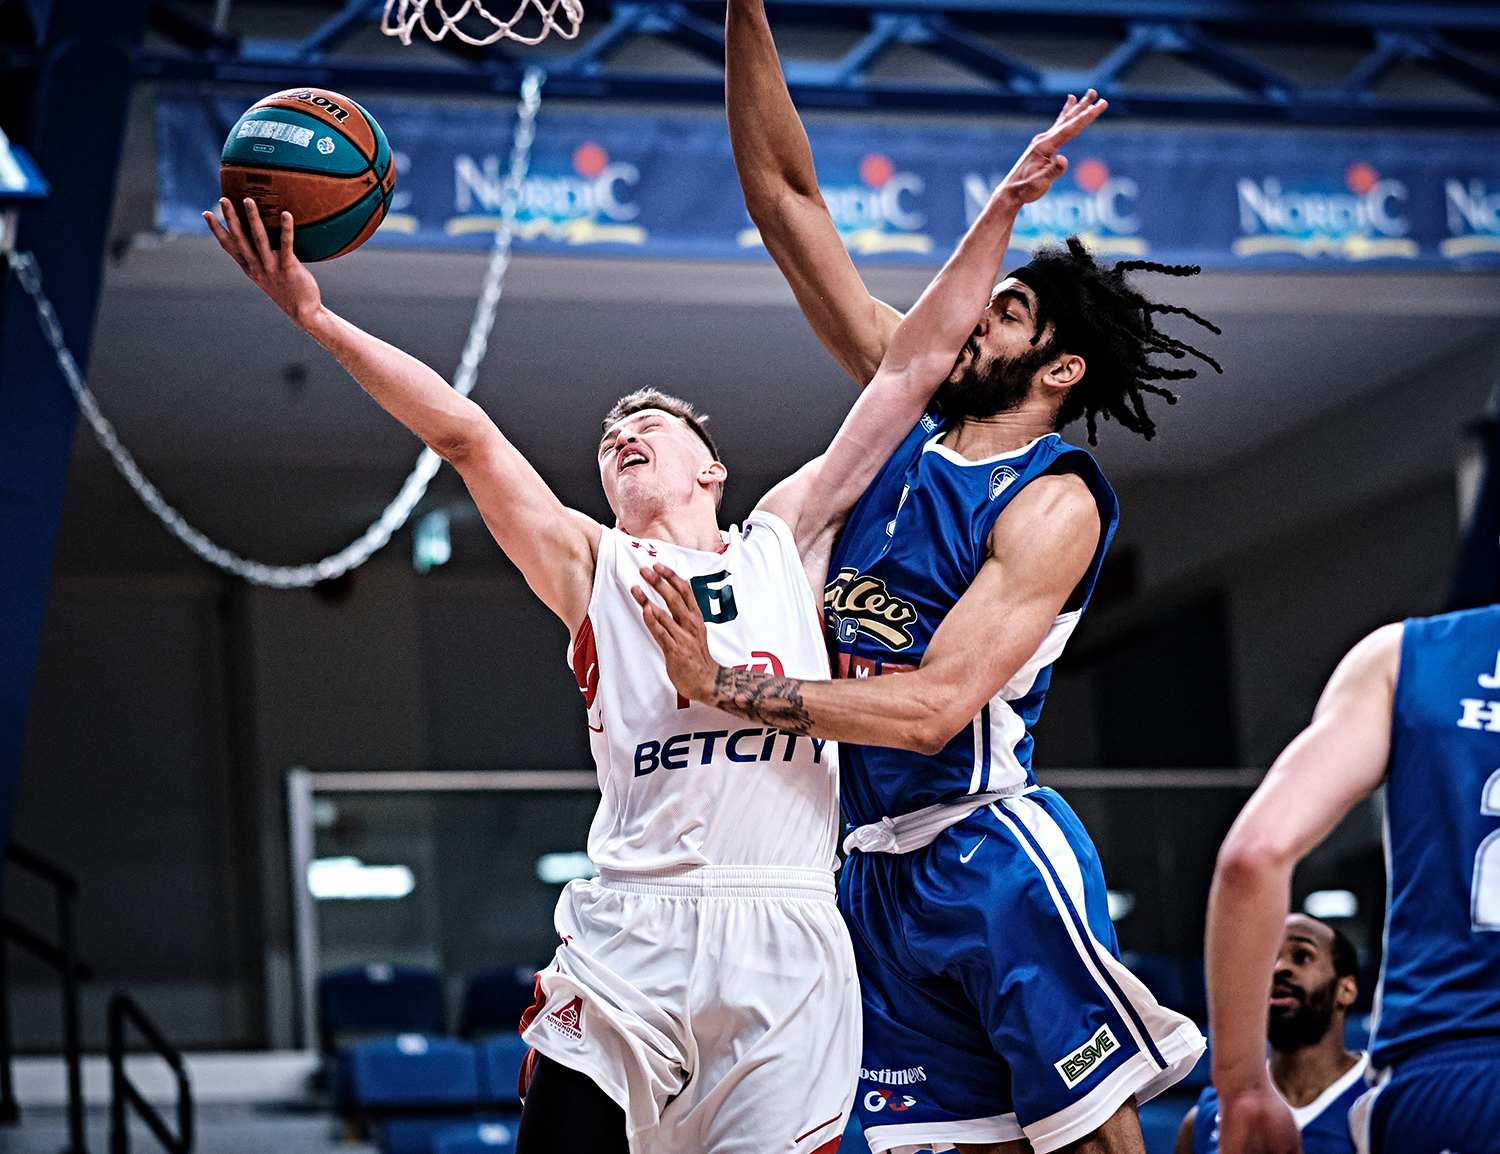 Loko's highest-scoring game in Tallinn